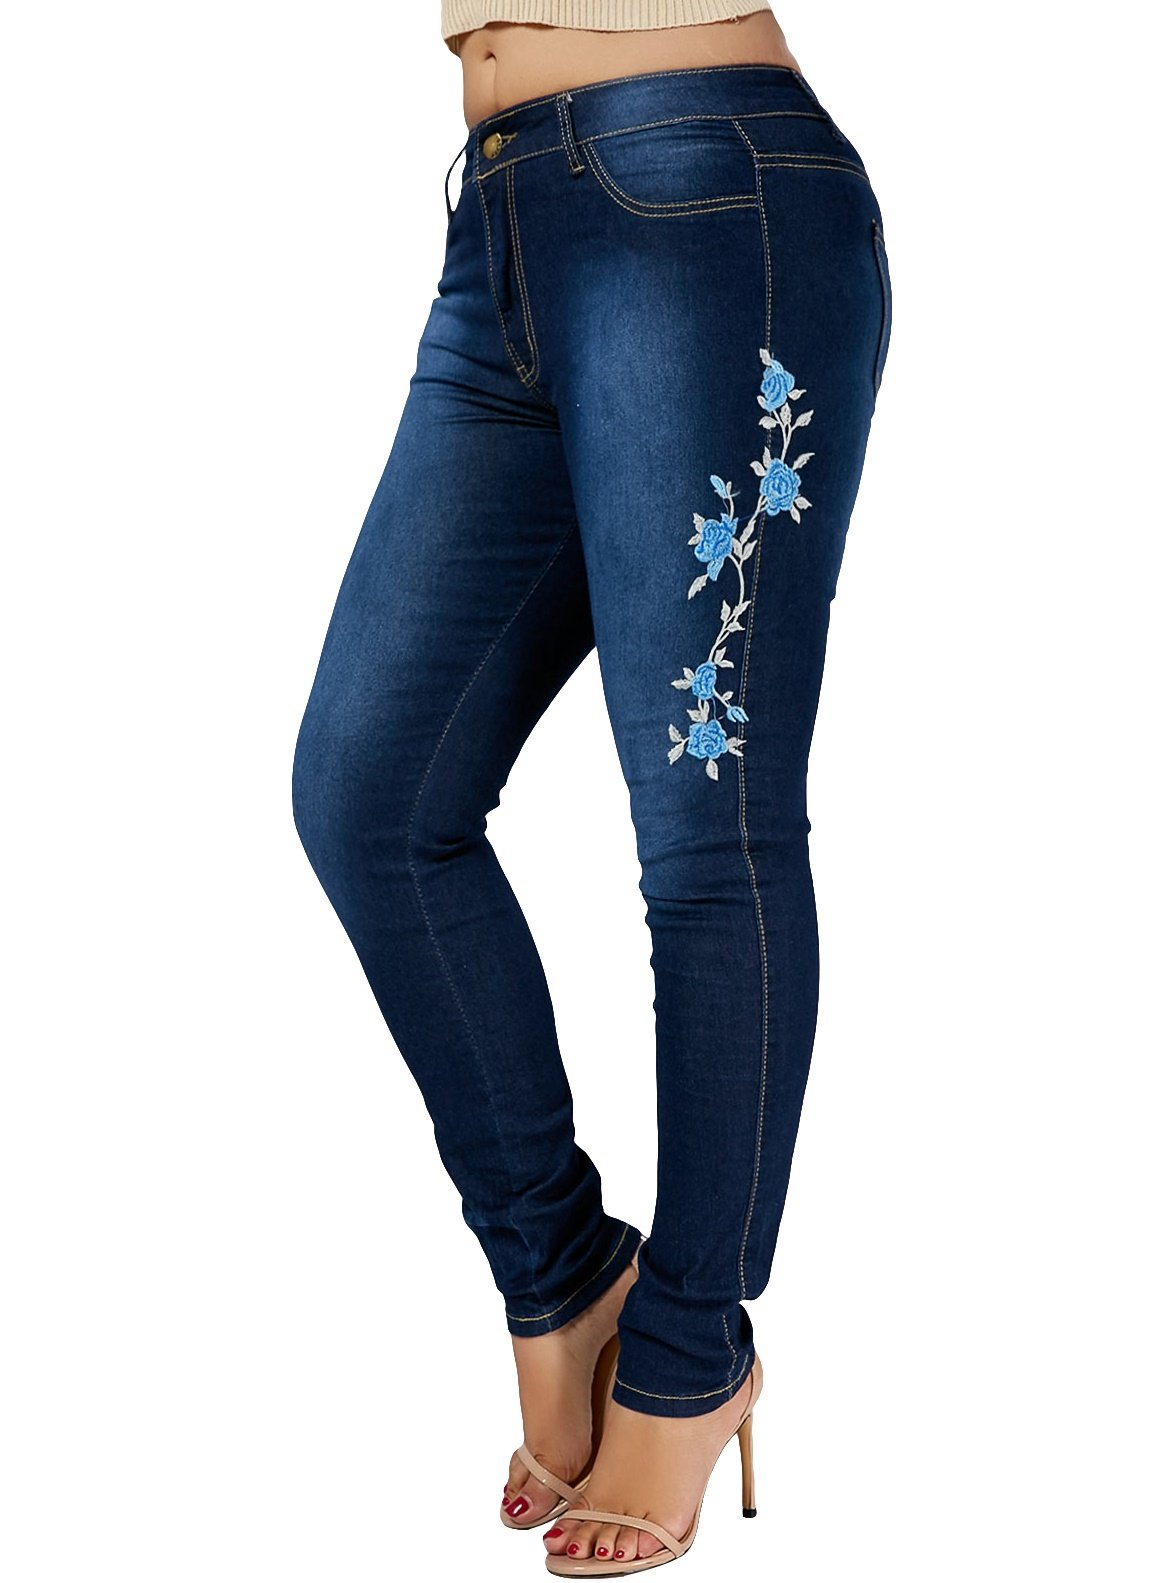 Nicetage Women's Hight Waisted Butt Lift Stretch Skinny Jeans Denim Pants with Embroidered Rose(HuaNiuzai Blue, S)